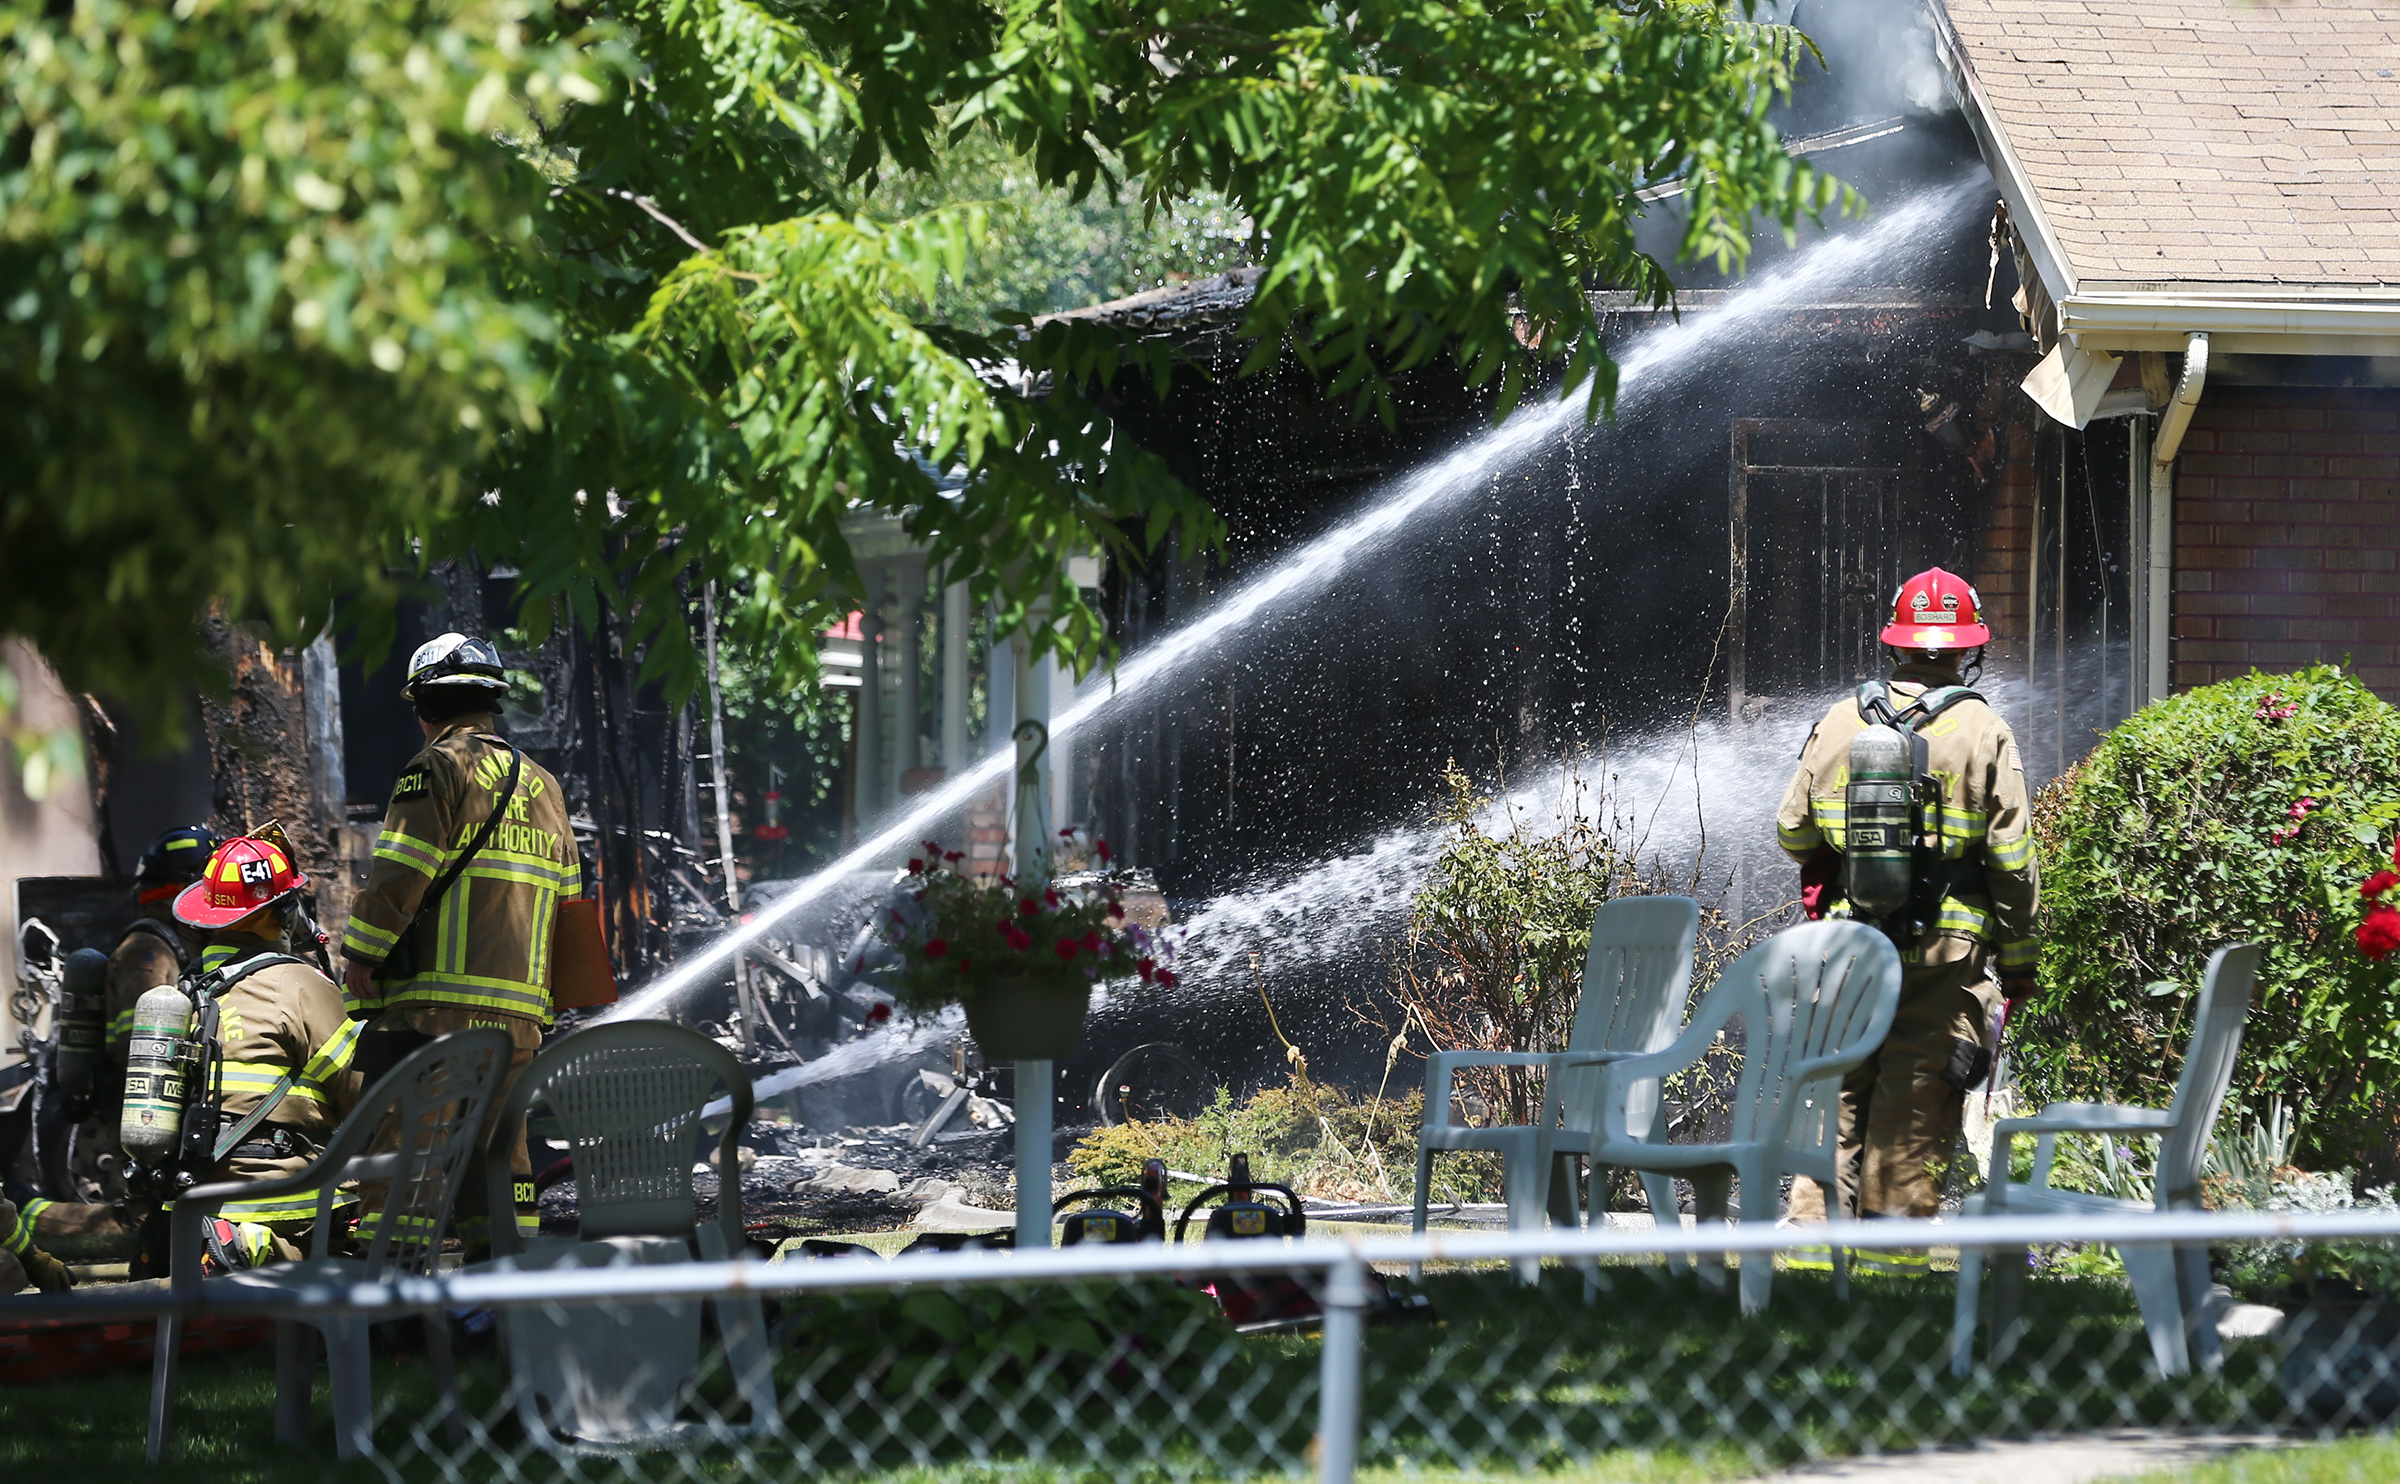 Unified Fire Authority firefighters spray water into a home as they fight a fire at 3381 S. 3170 East in Millecreek on Sunday, July 5, 2020.